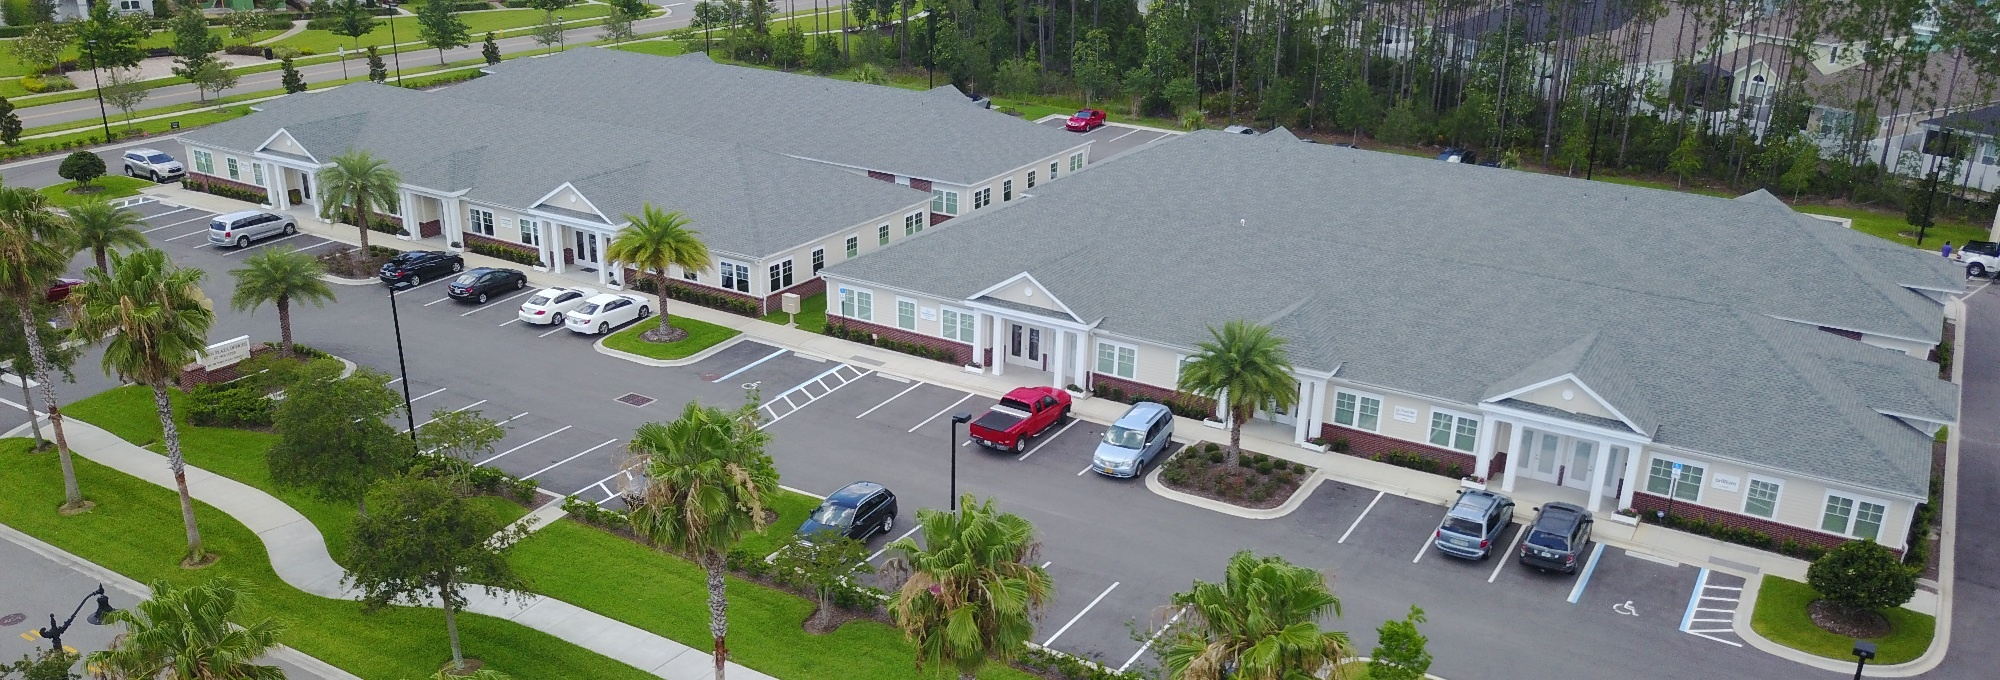 Town Plaza Offices at Nocatee